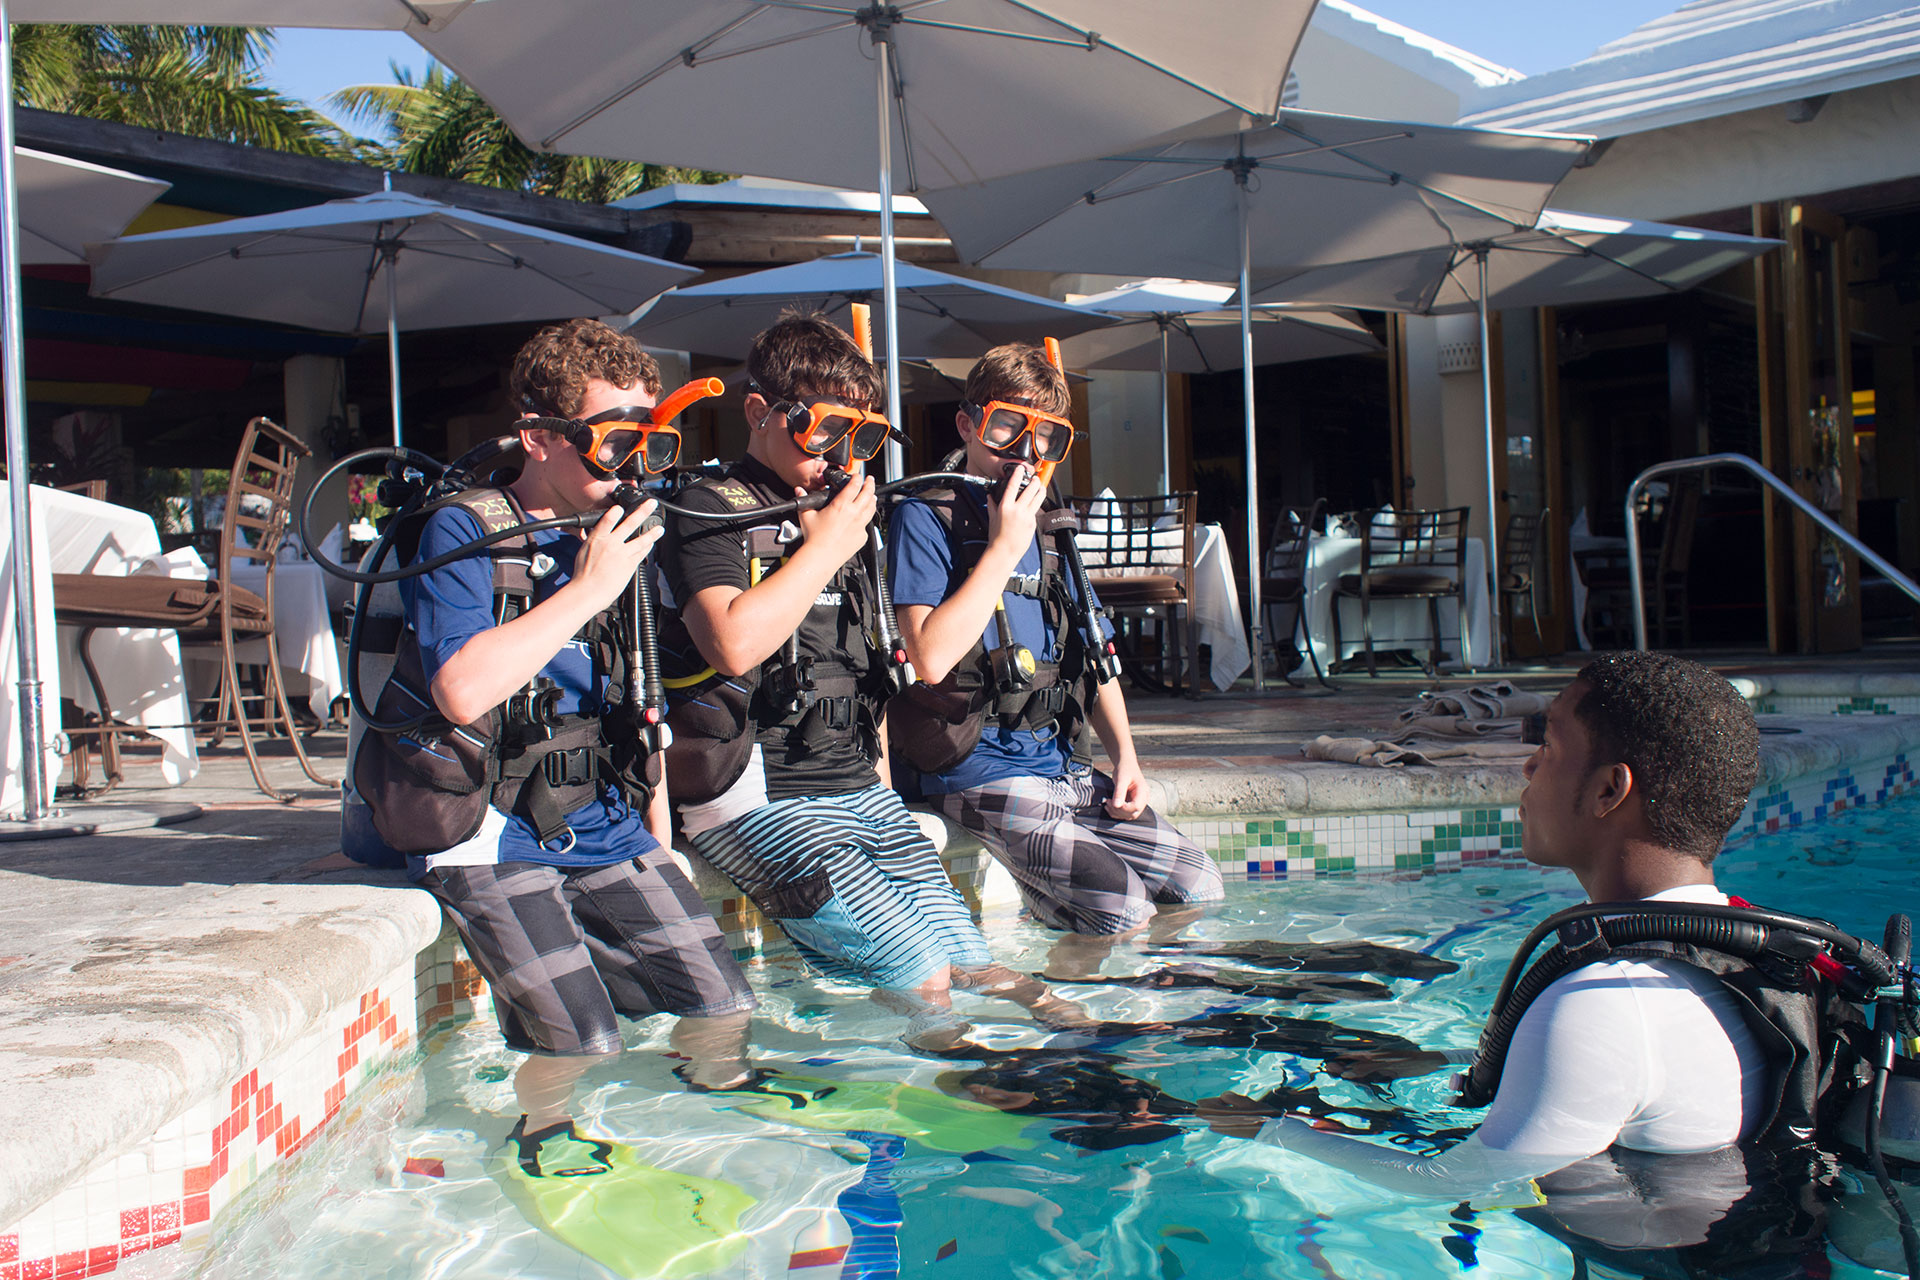 Scuba Diving Lessons at Beaches Turks and Caicos; Courtesy of Beaches and Turks and Caicos